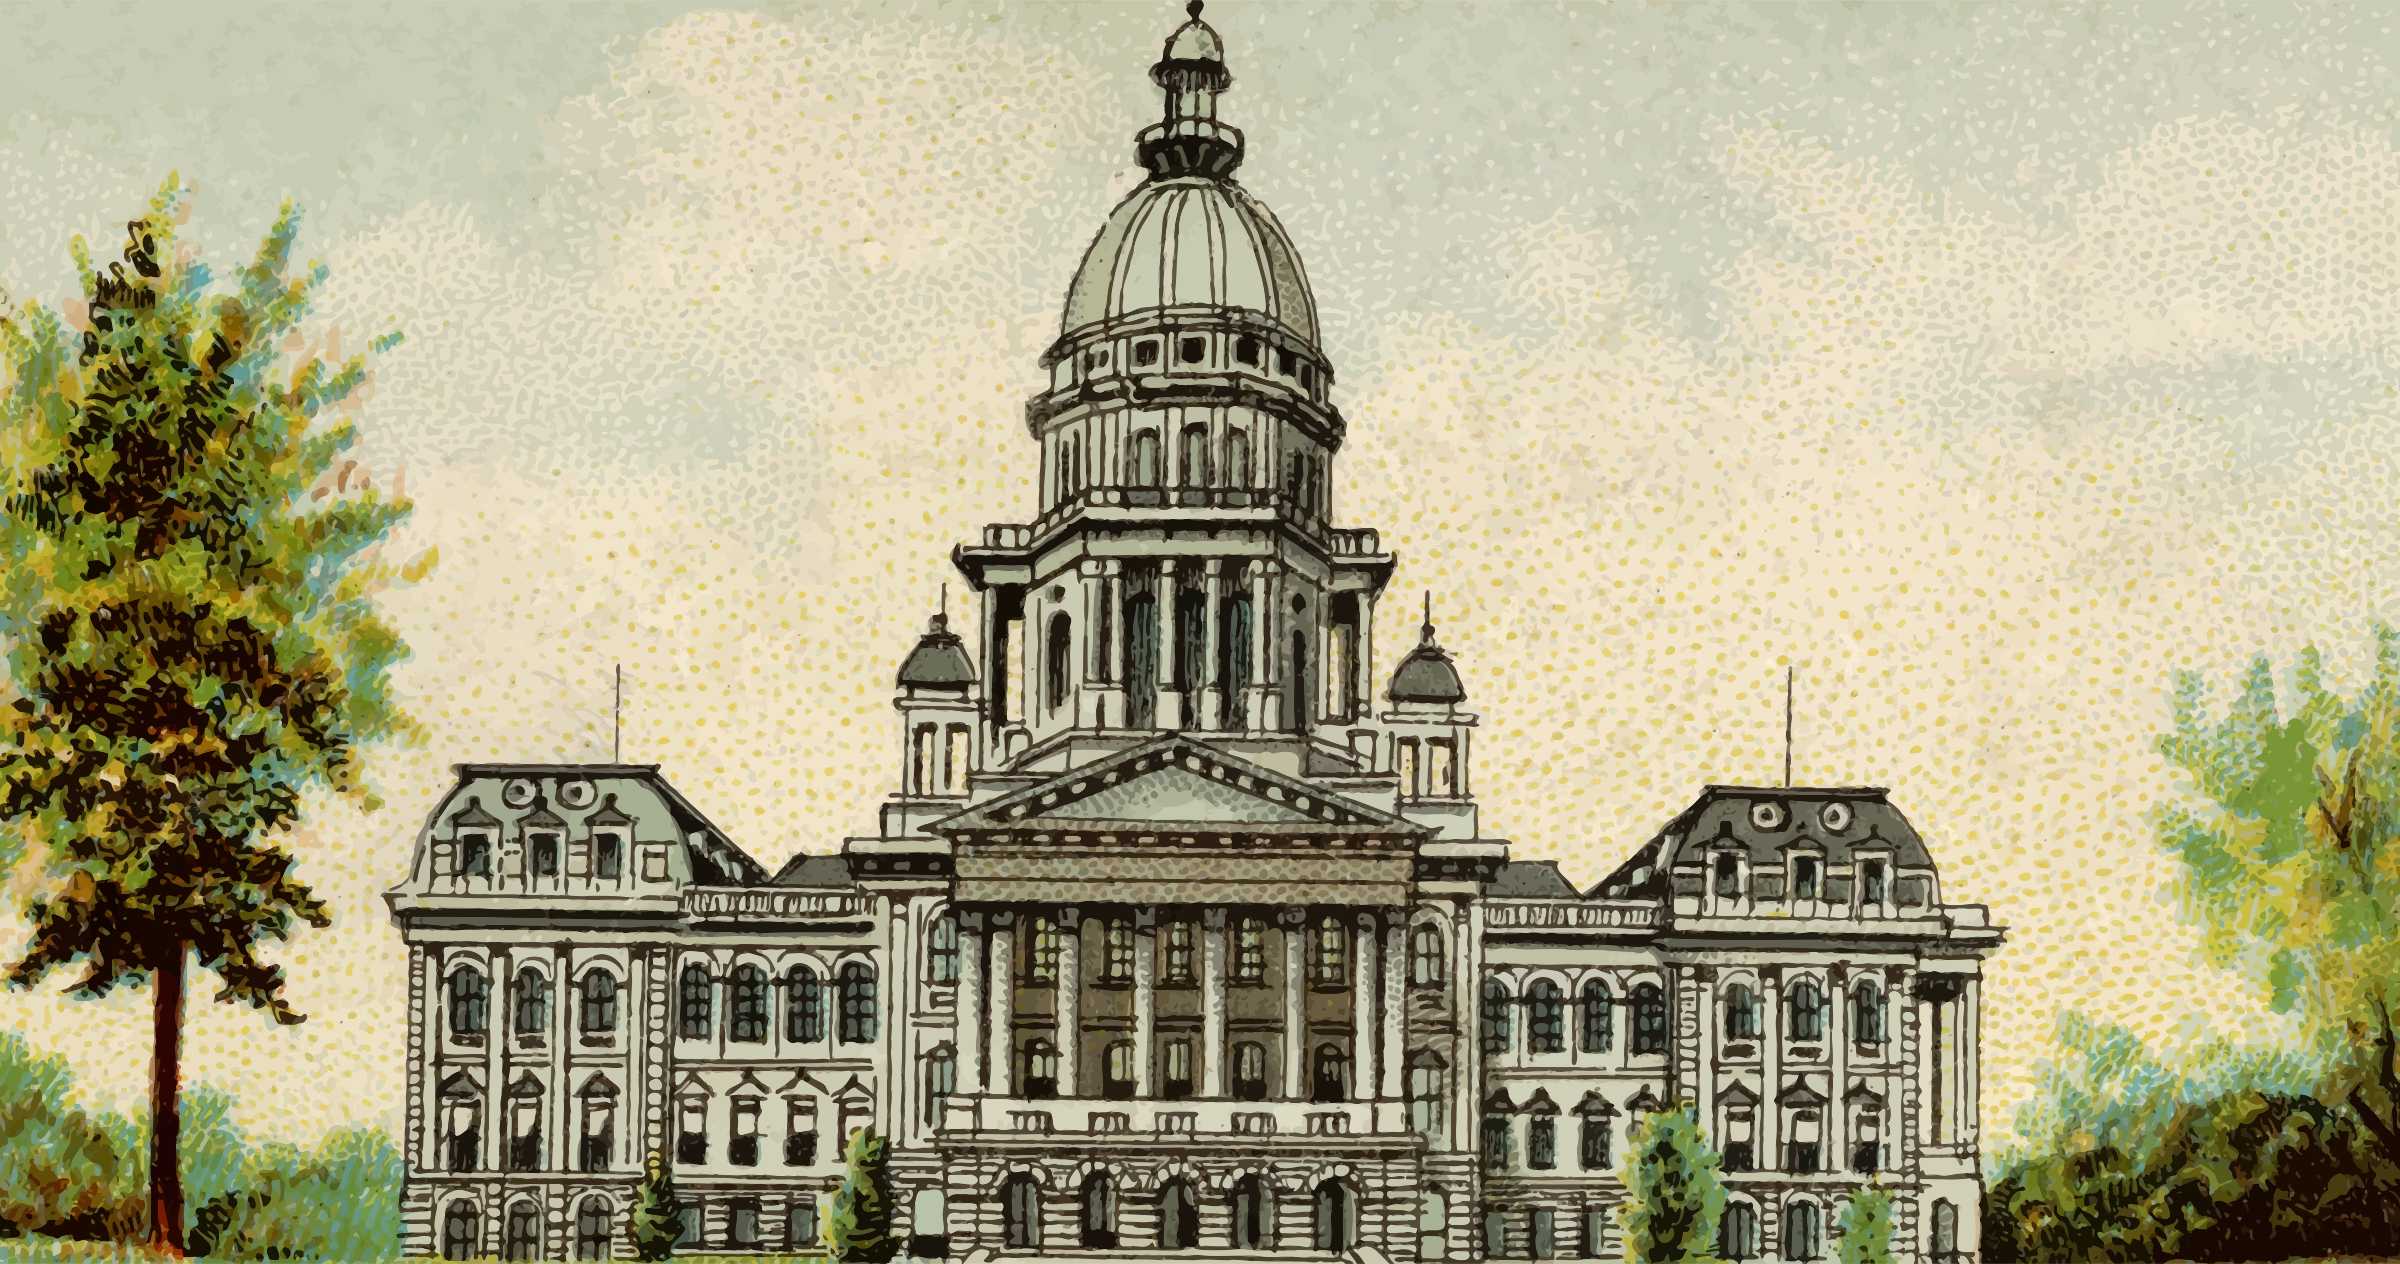 Cigarette Card - Capitol Building of Illinois by Firkin